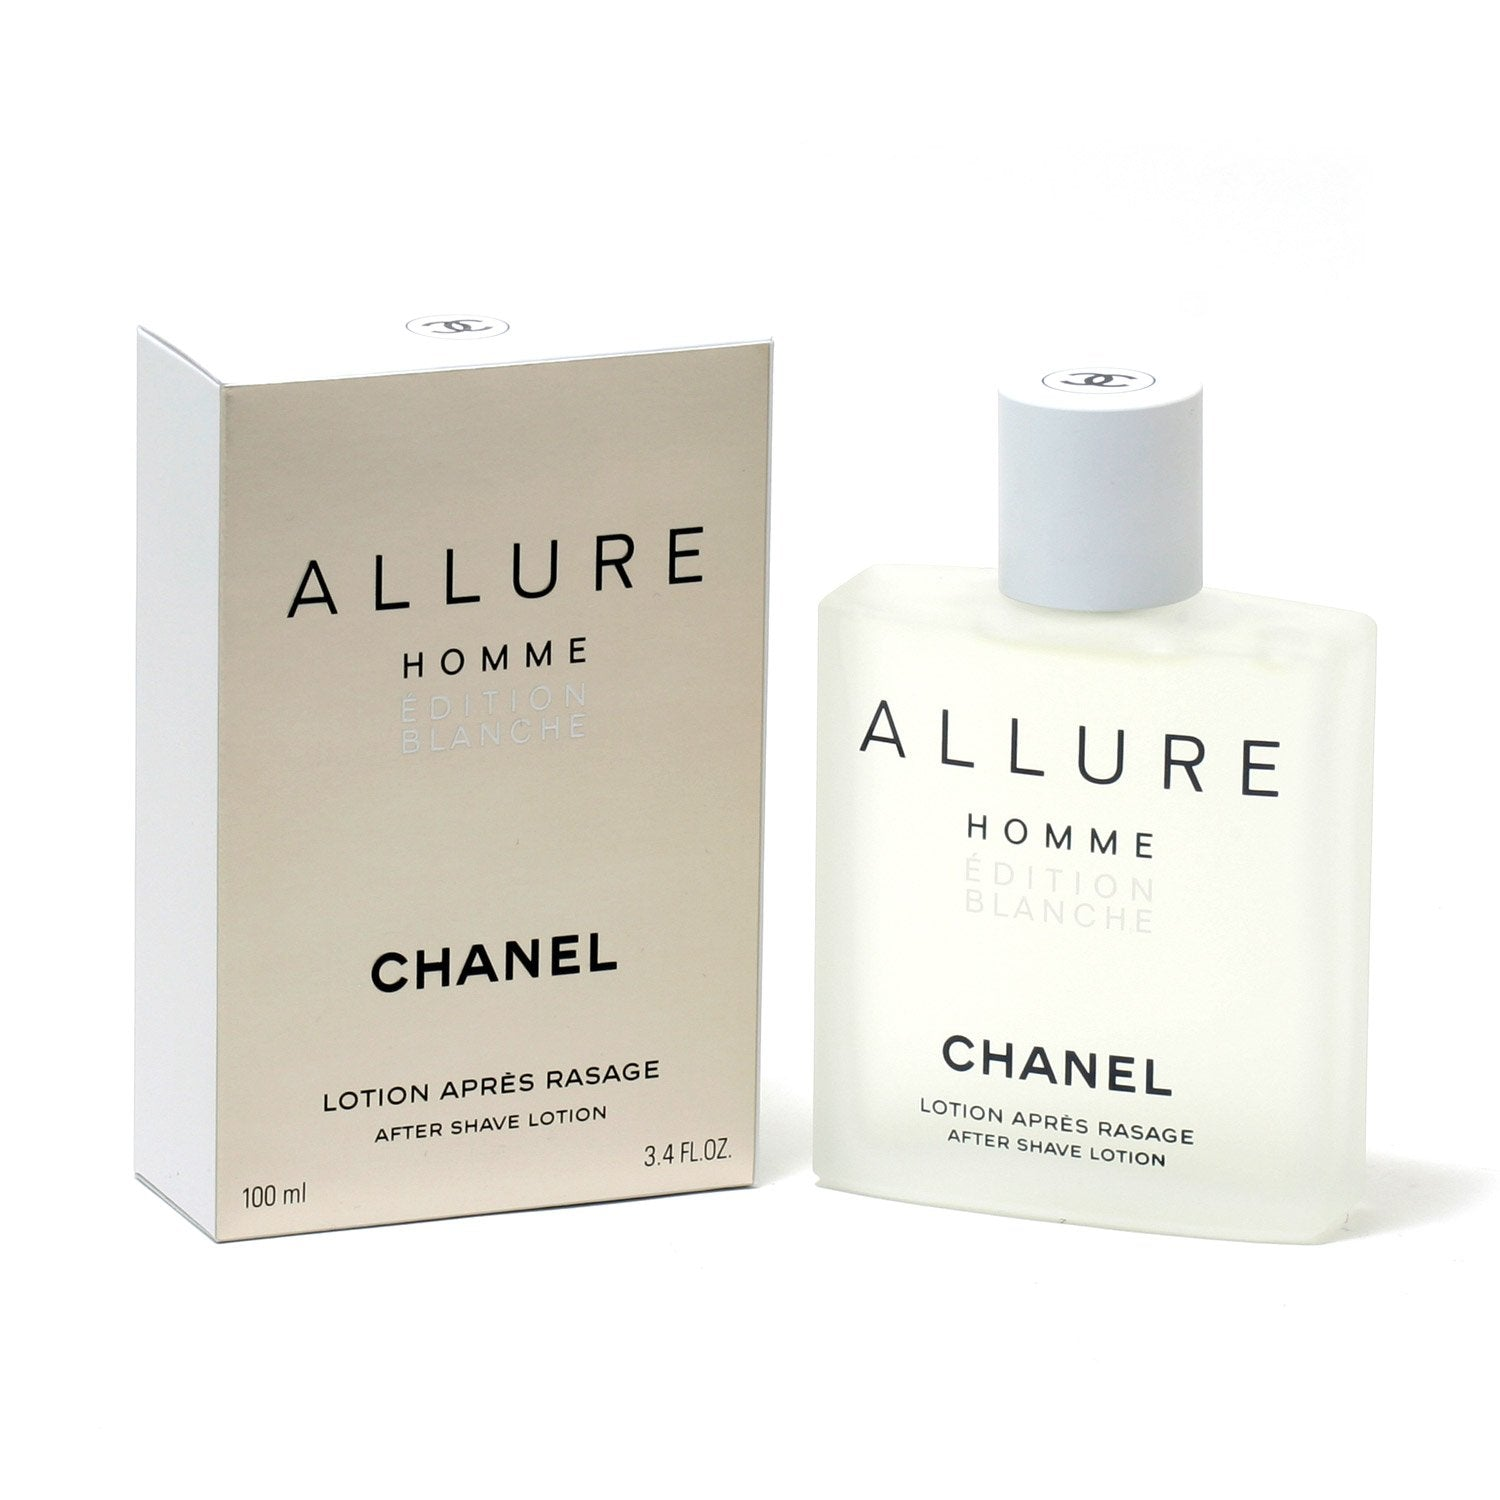 3c4d7b103a72 Cologne - CHANEL ALLURE MEN BLANCHE EDITION - AFTER SHAVE LOTION, 3.4 OZ